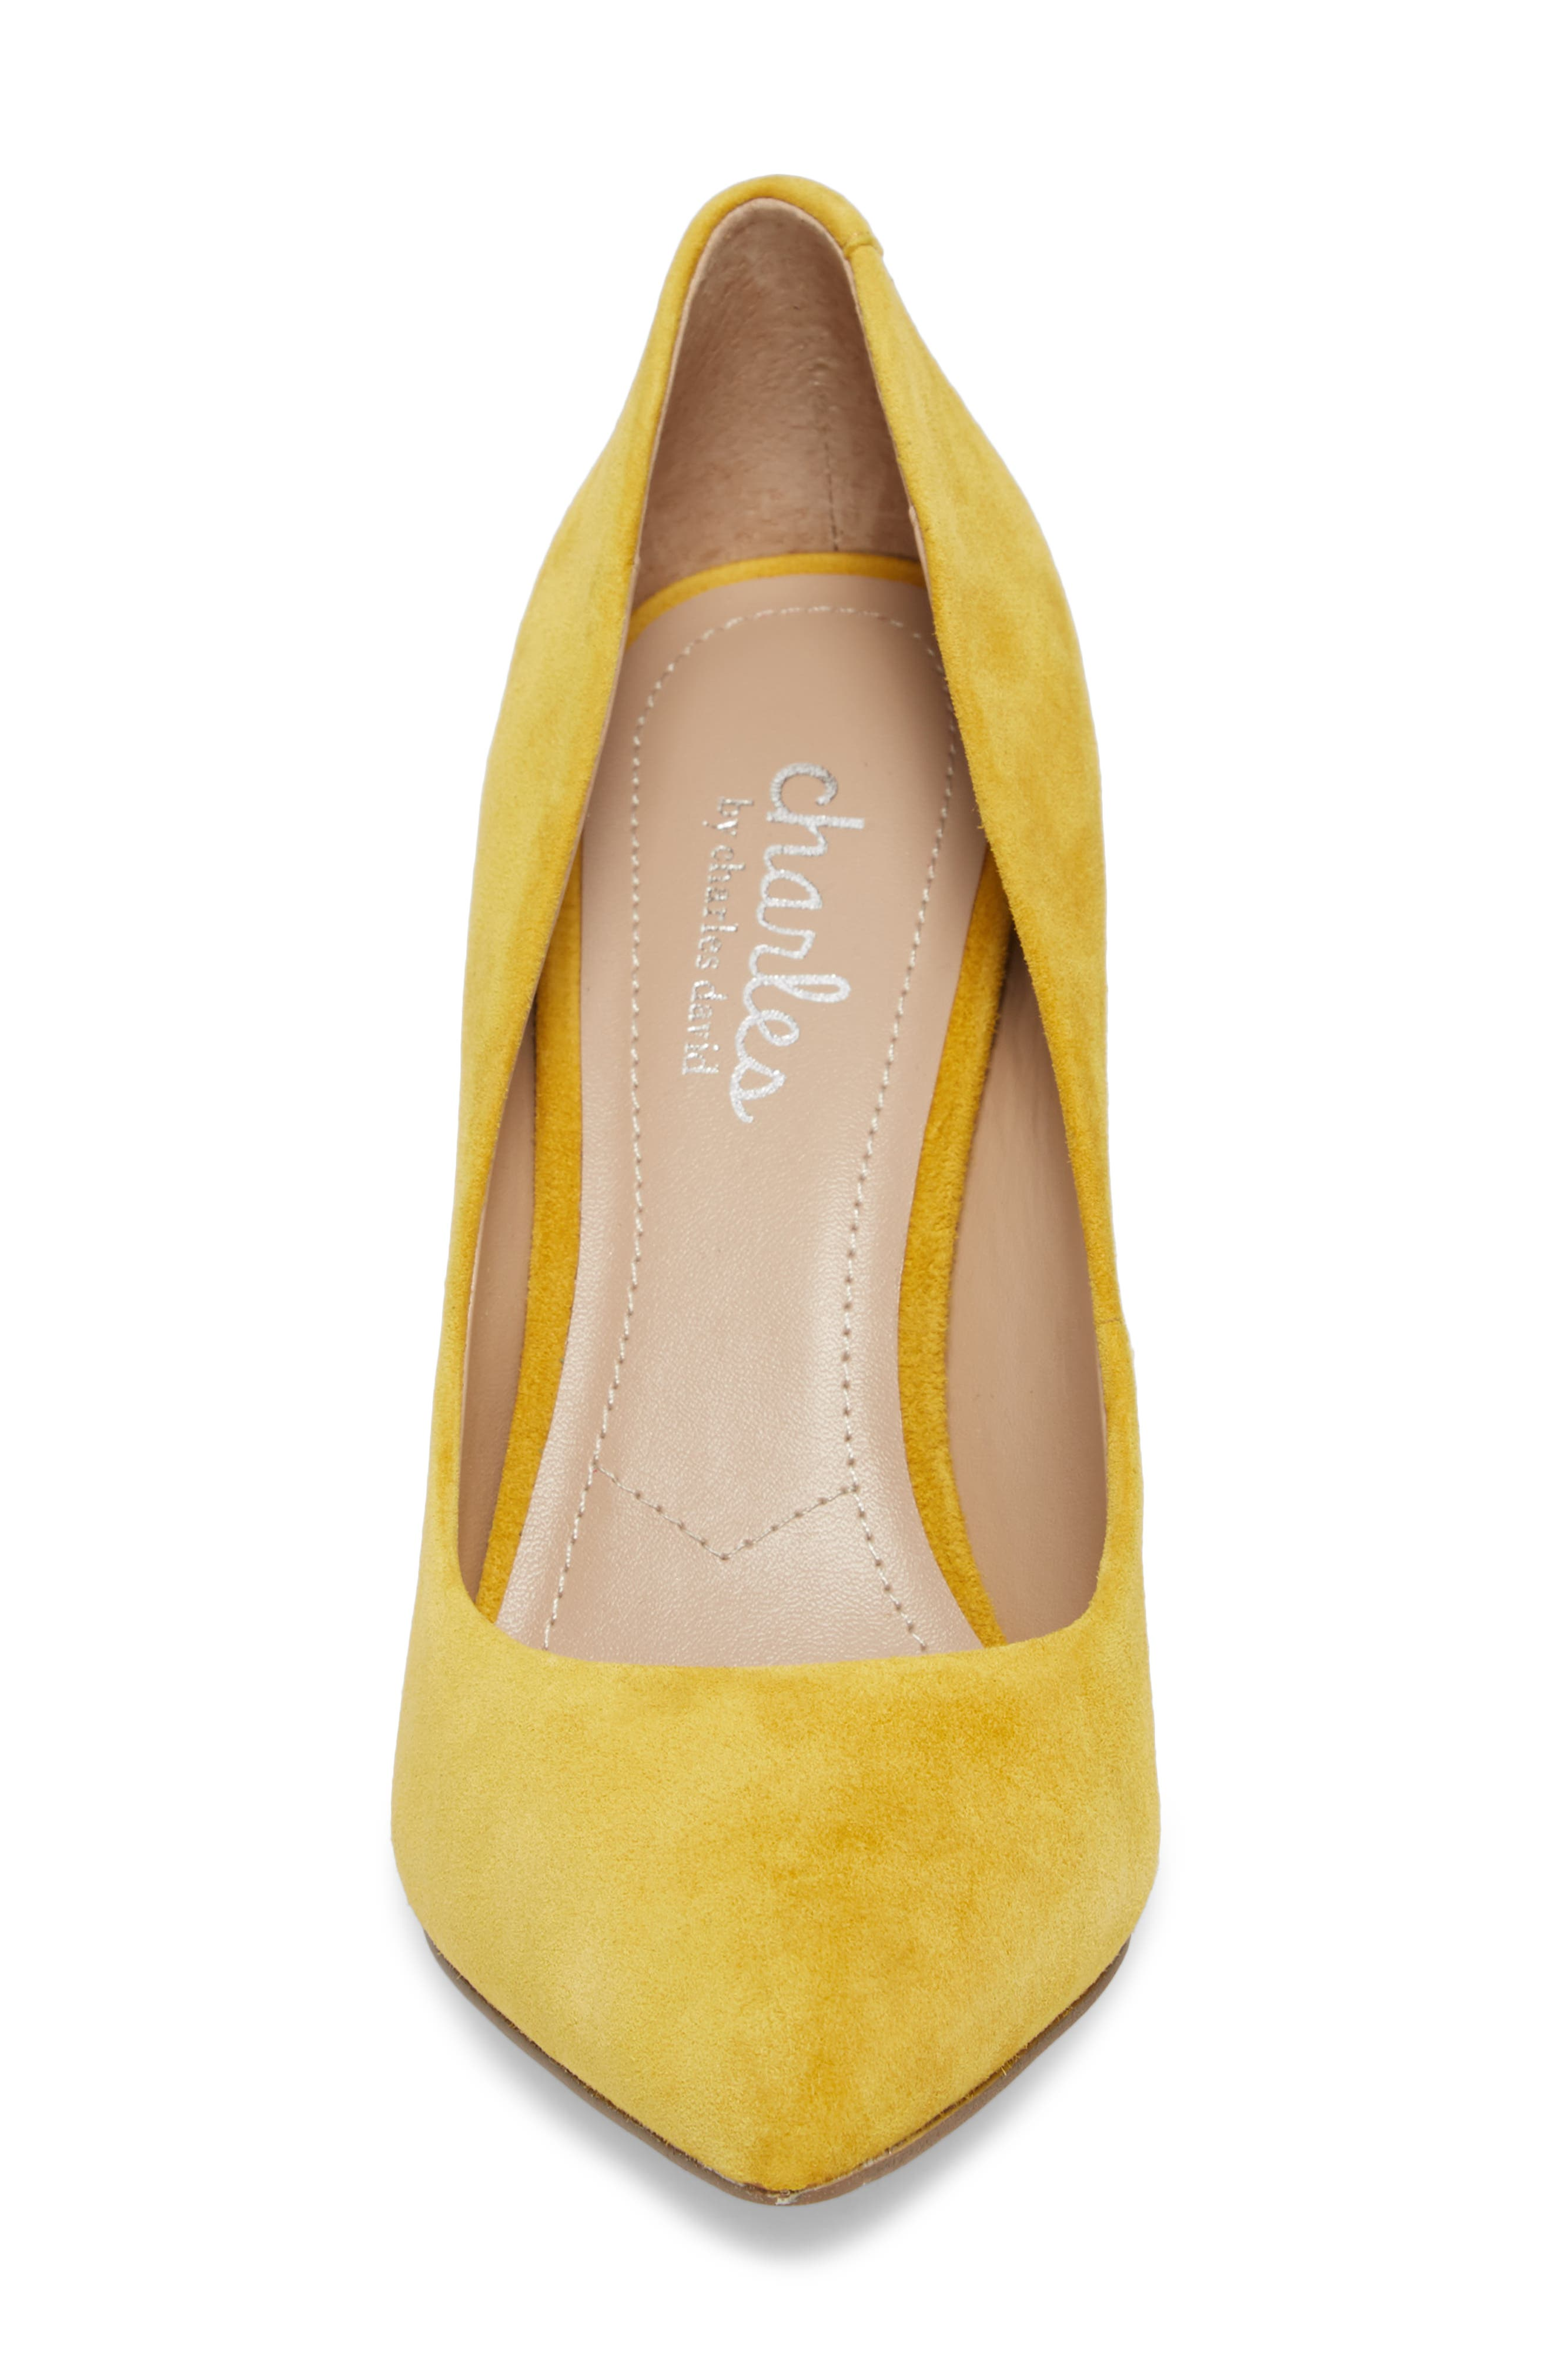 Maxx Pointy Toe Pump,                             Alternate thumbnail 4, color,                             Canary Suede